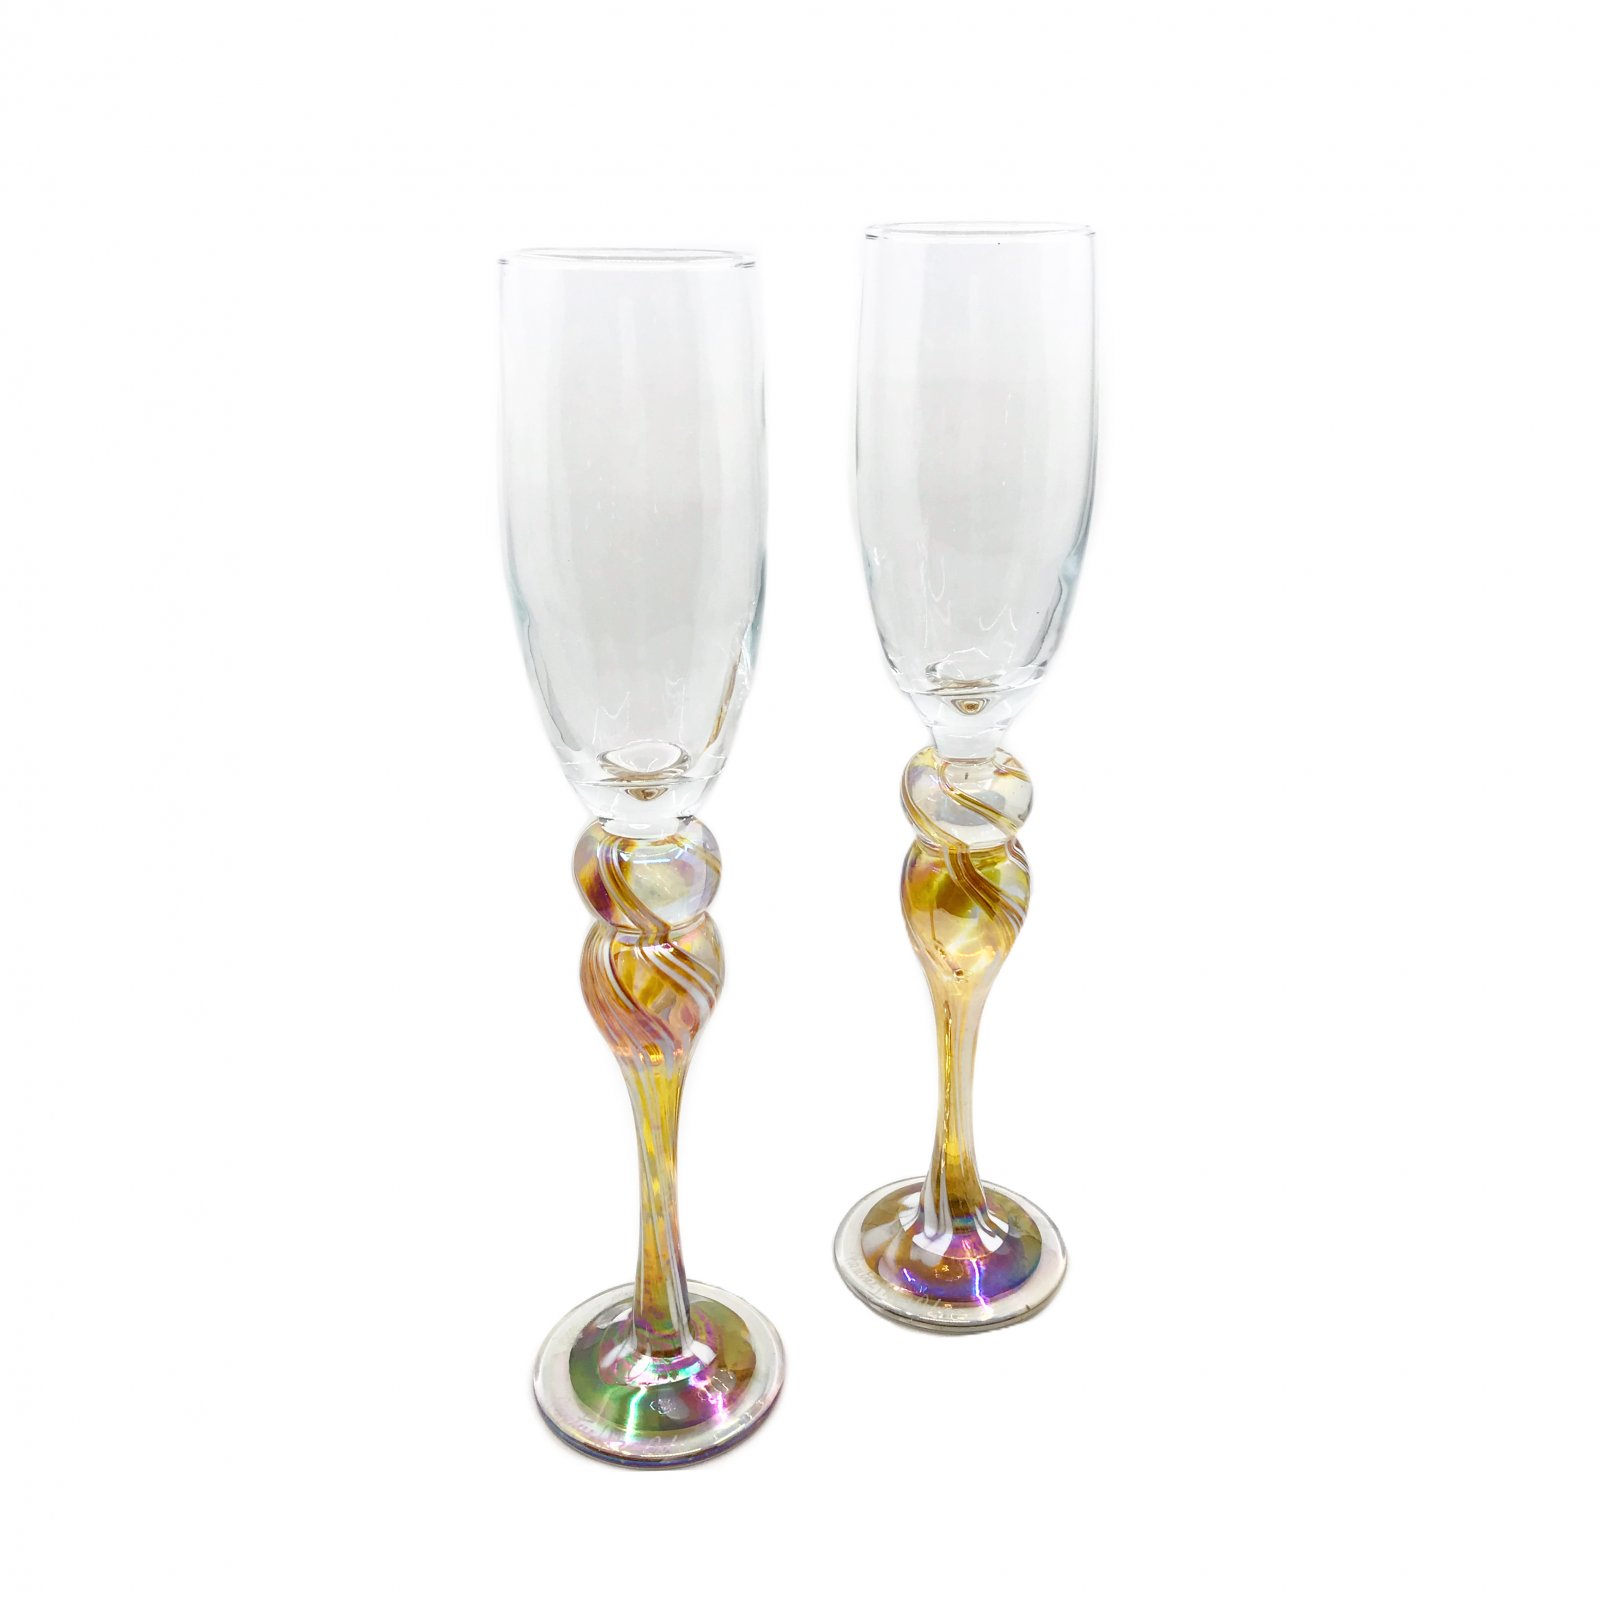 Rosetree Yellow Champagne Flute